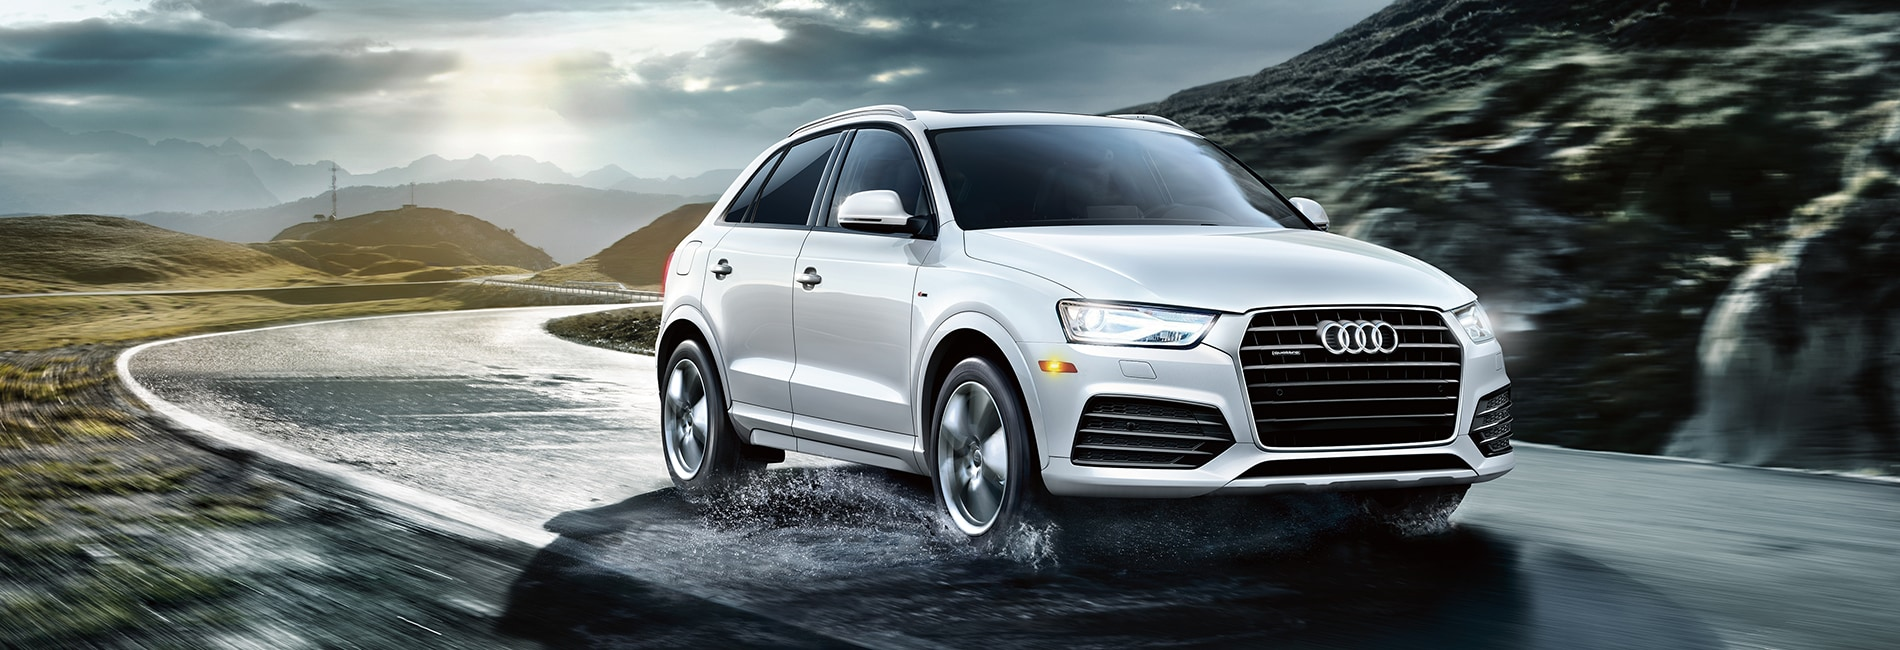 New Audi Q3 Lease Specials And Offers Dch Audi Oxnard